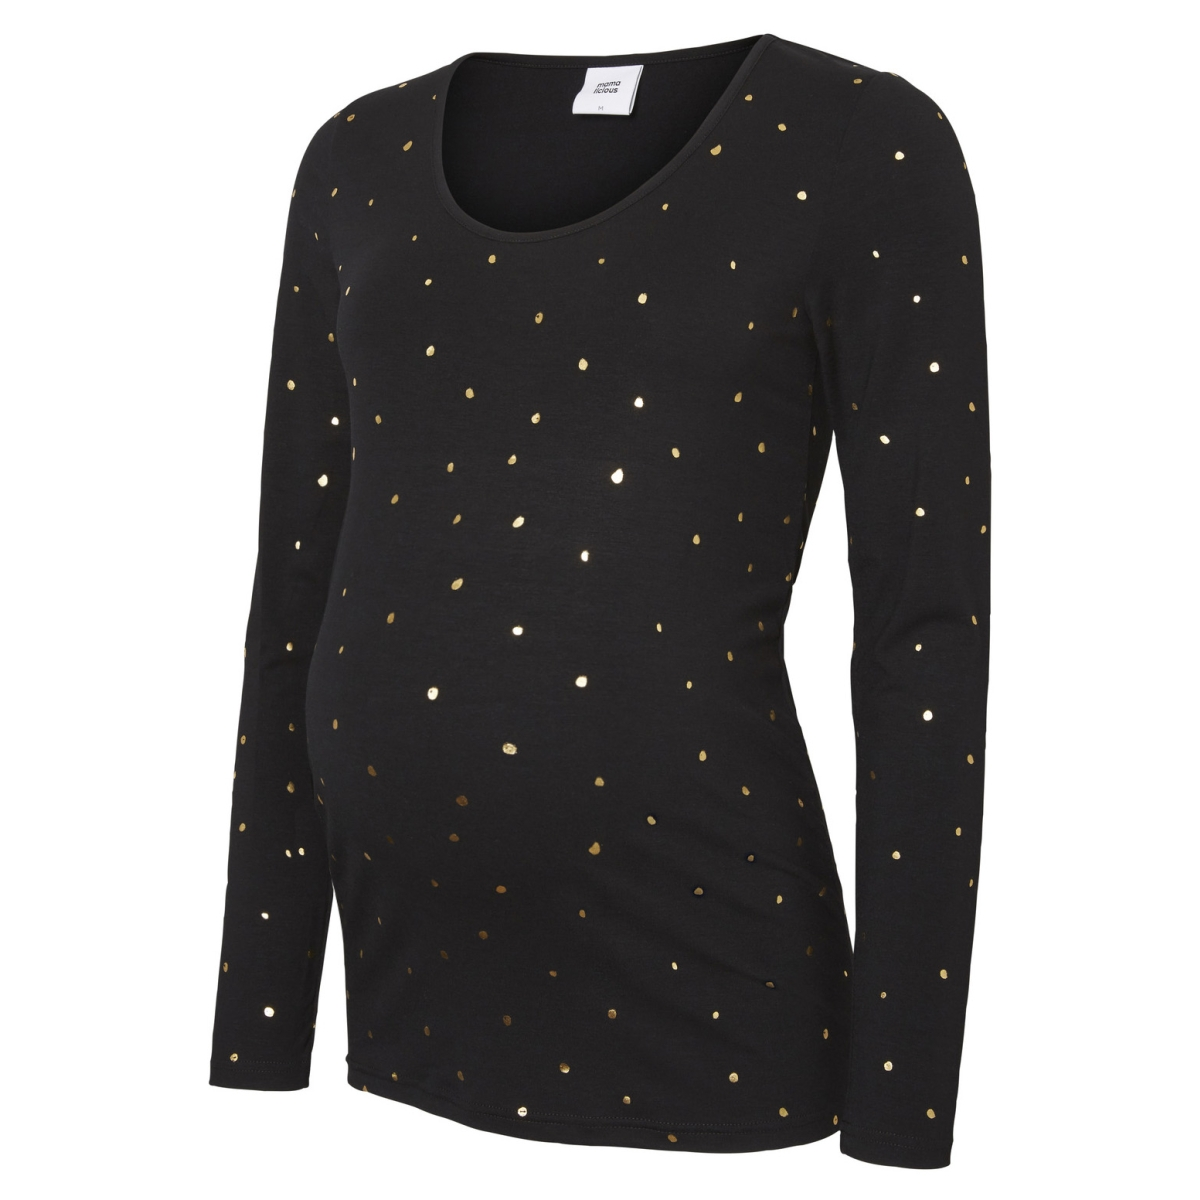 mldallas l/s jersey top 20008139 mama-licious positie shirt black/gold foil